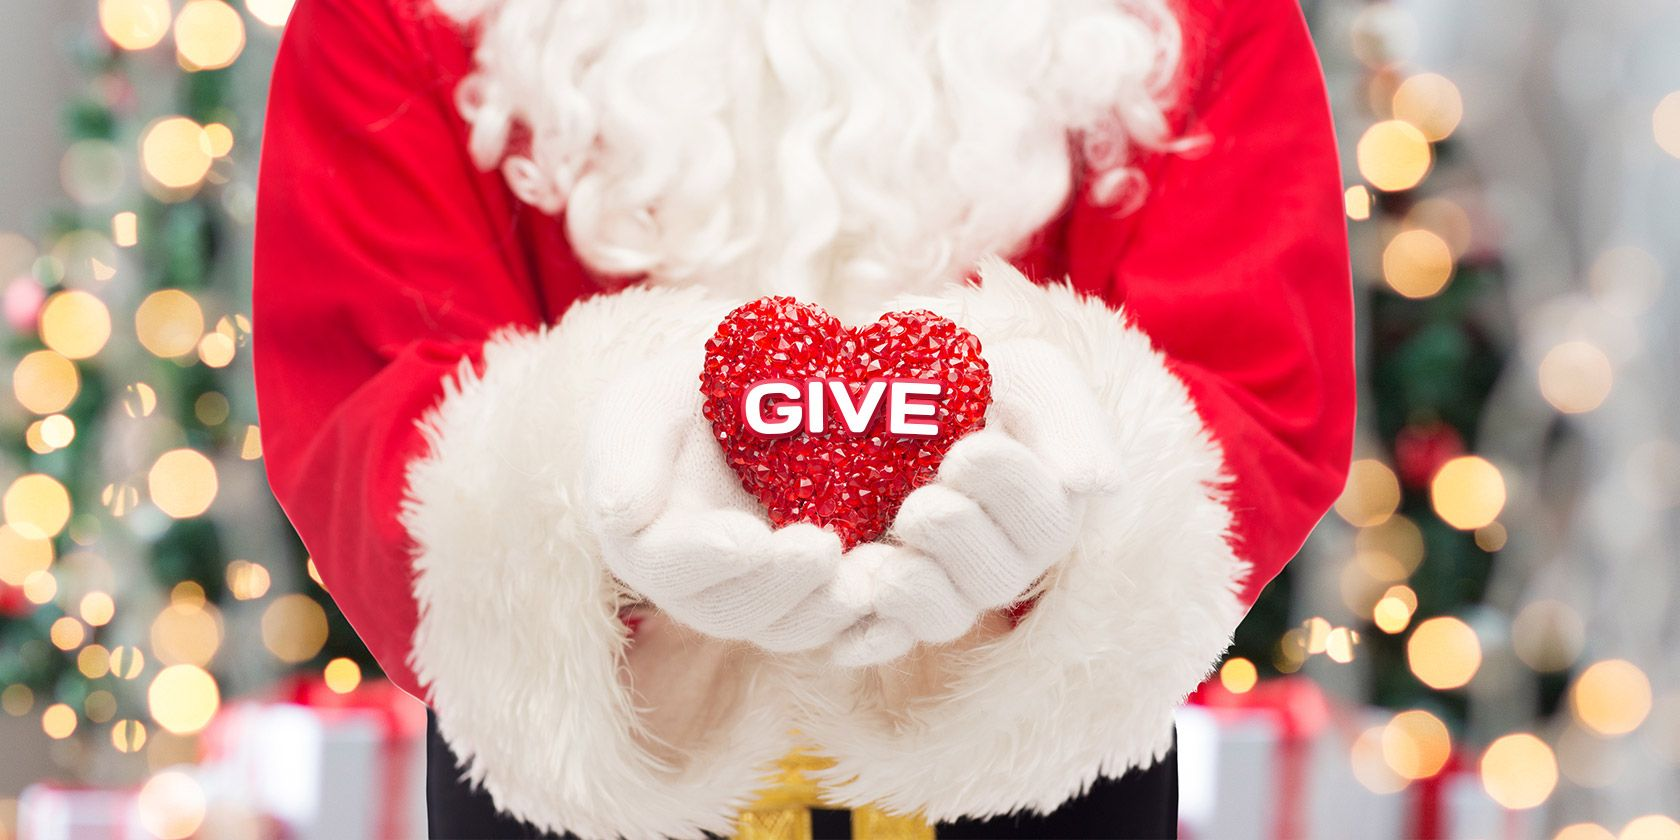 Top 7 Christmas Charity Organizations That Help Low Income Families Christmas Help Buy Christmas Gifts Personalized Christmas Gifts